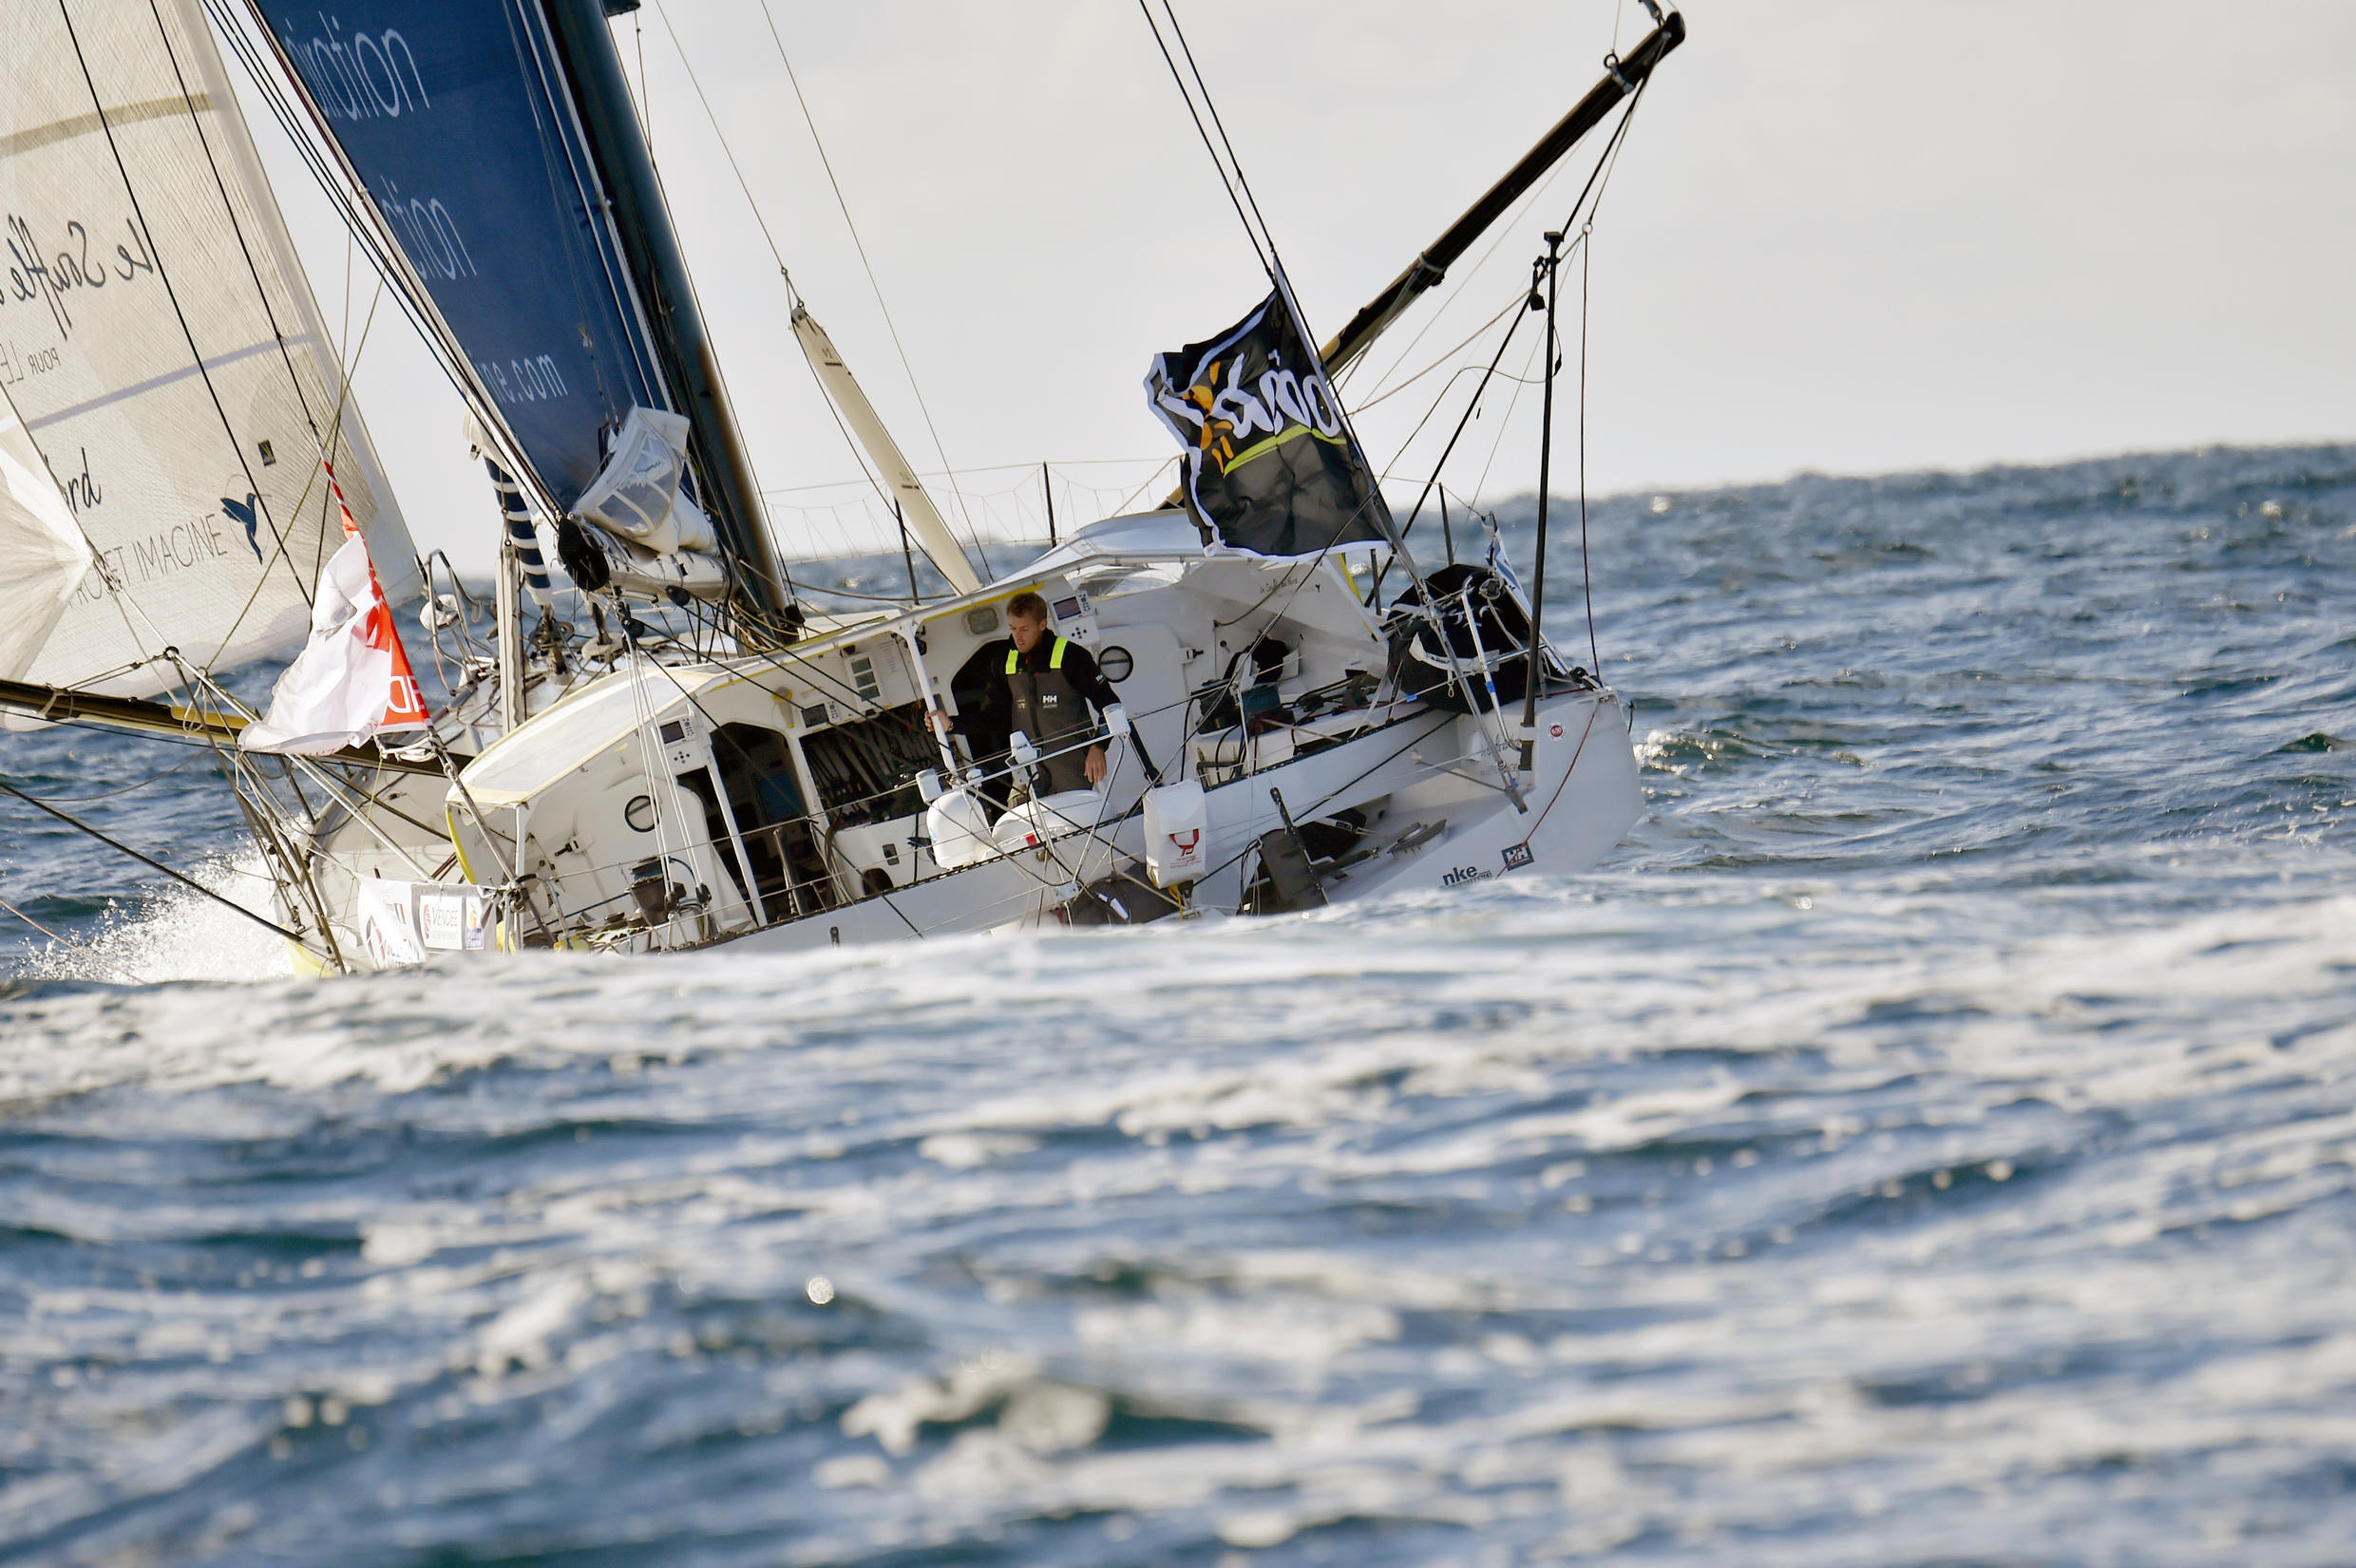 """French skipper Thomas Ruyant sails in his Imoca monohull """"Le souffle du nord """" the start of the Vendee Globe around-the-world solo sailing race, on 6 of November 2016 off les Sables d'Olonne."""